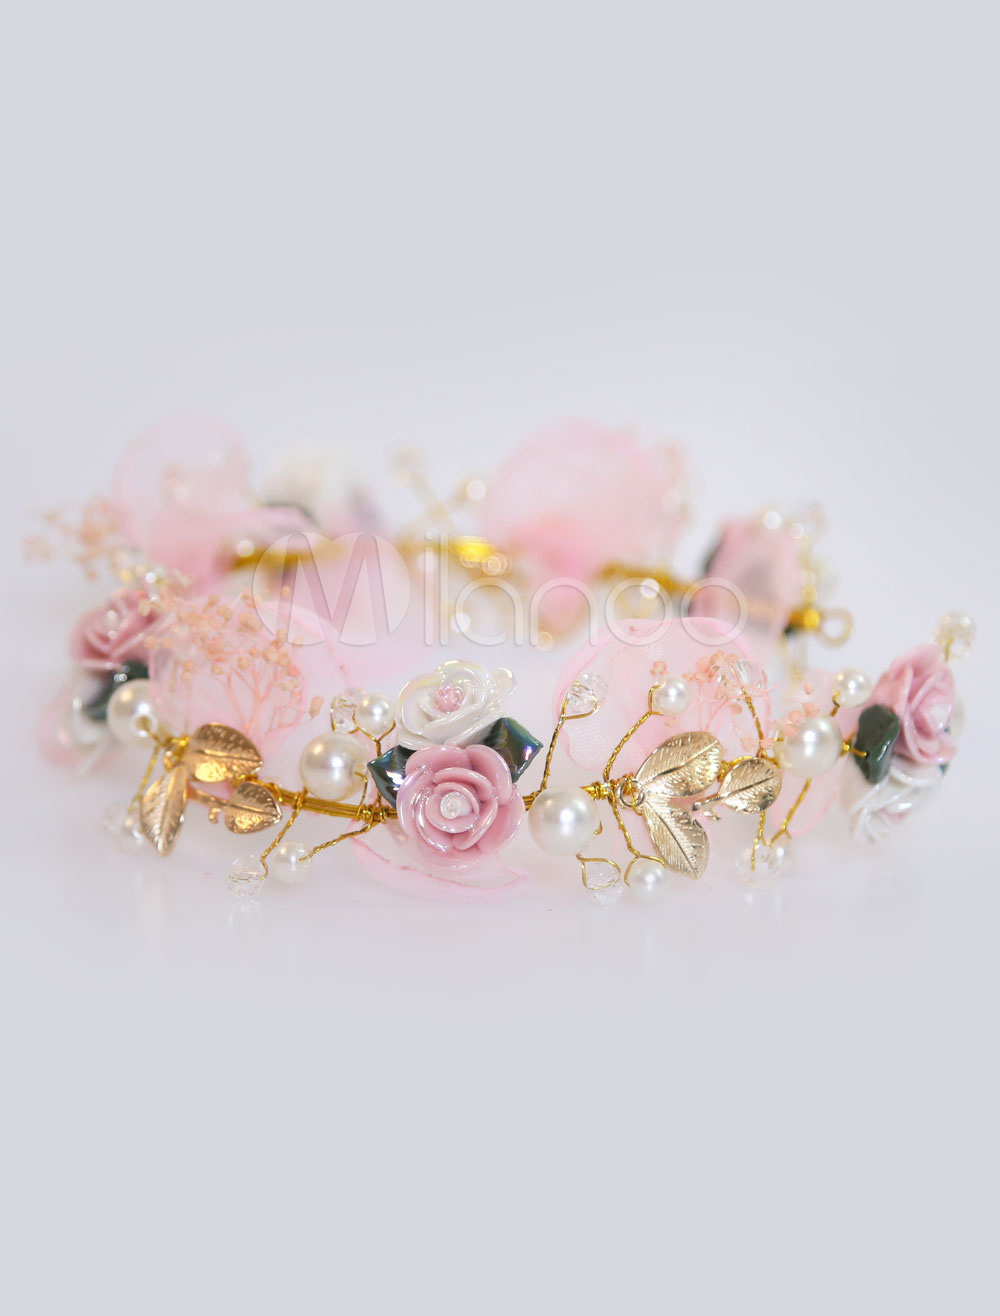 Buy Pink Wedding Headpieces Flowers Pearls Headband Bridal Hair Accessories for $15.99 in Milanoo store